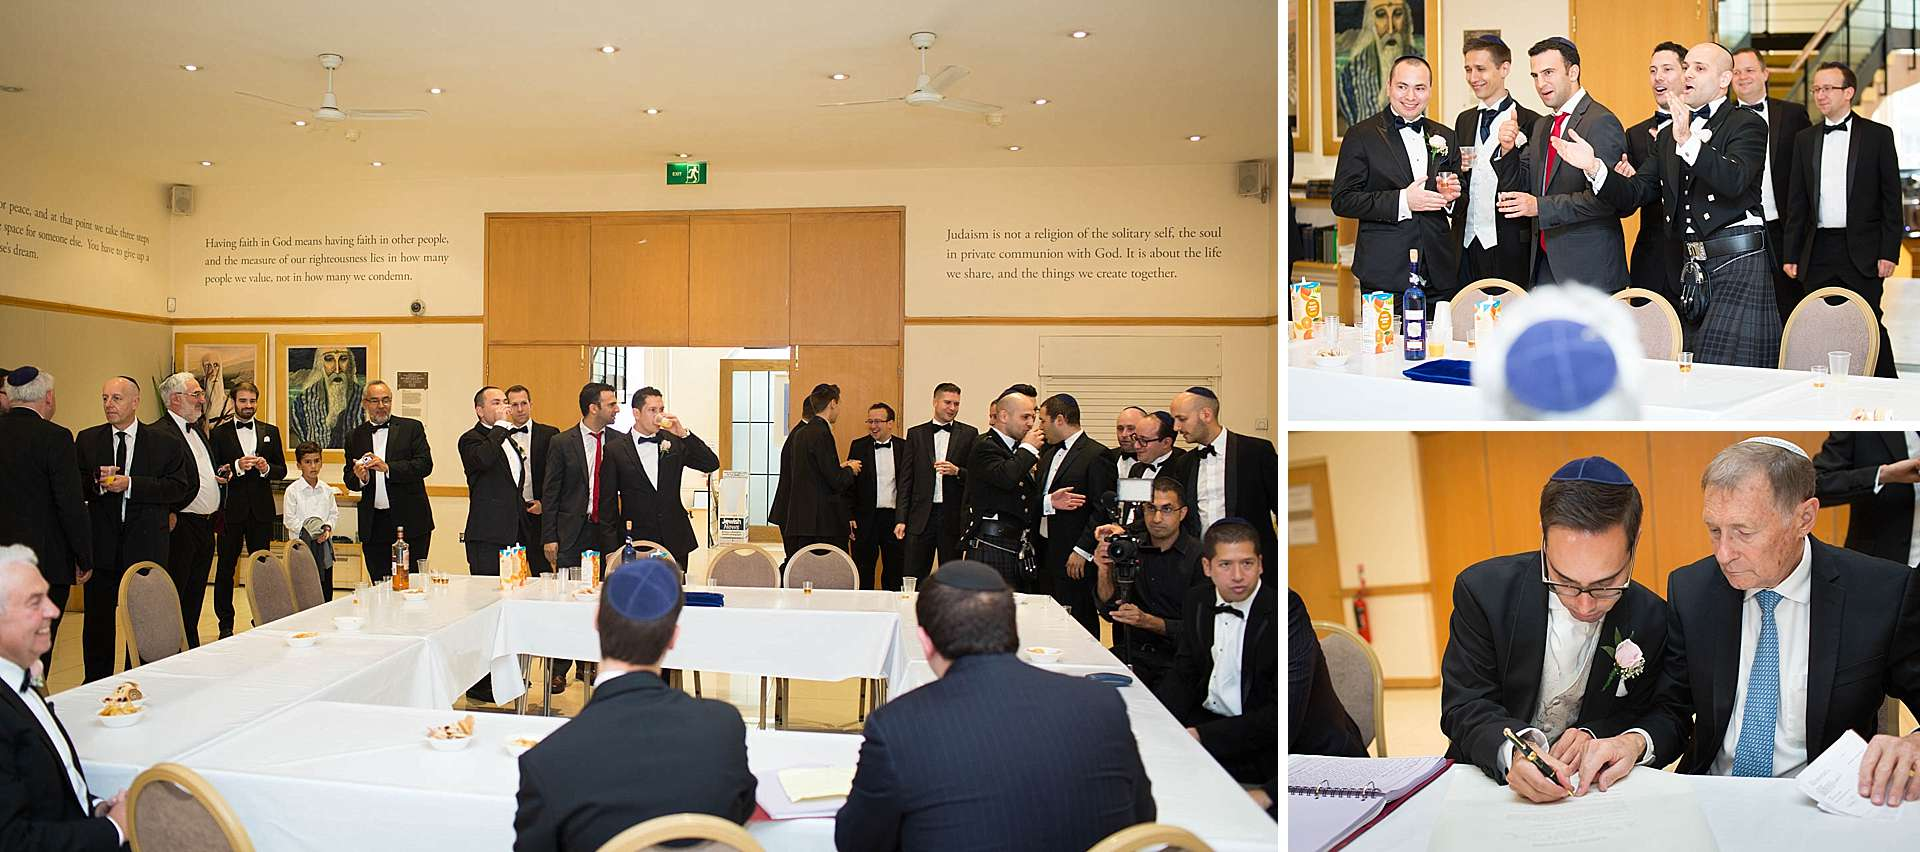 London Jewish Wedding - Tisch